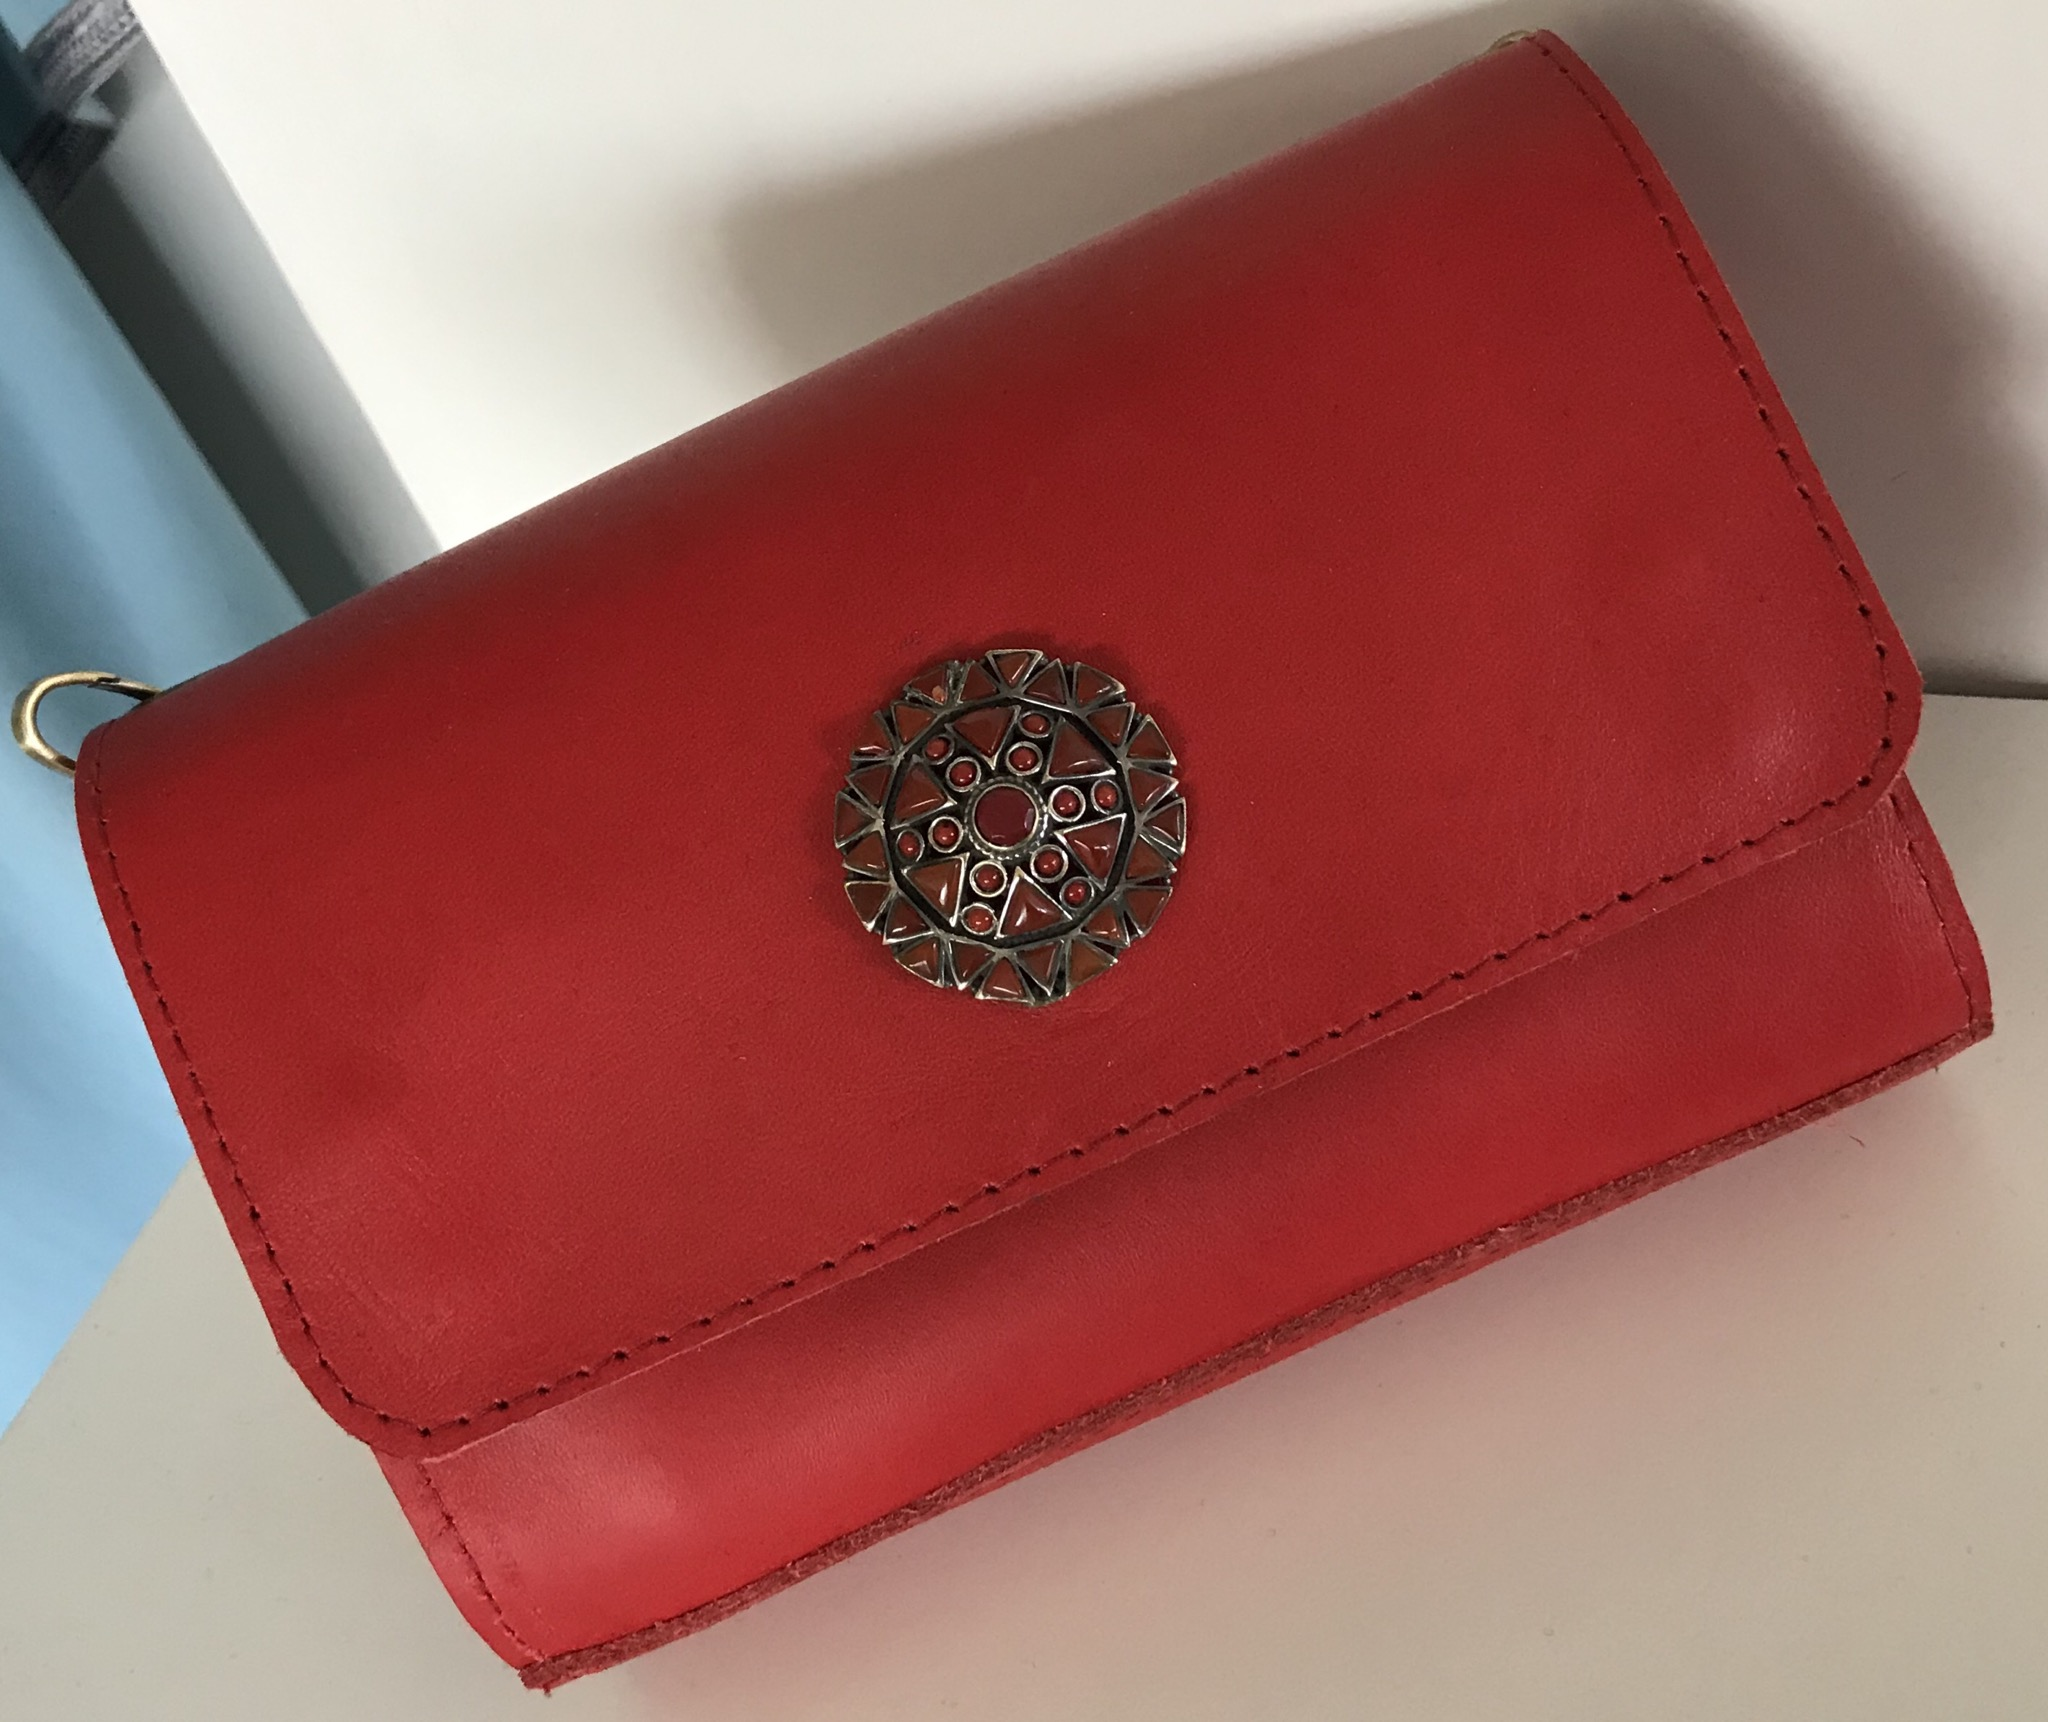 Jewelery bag leather Red